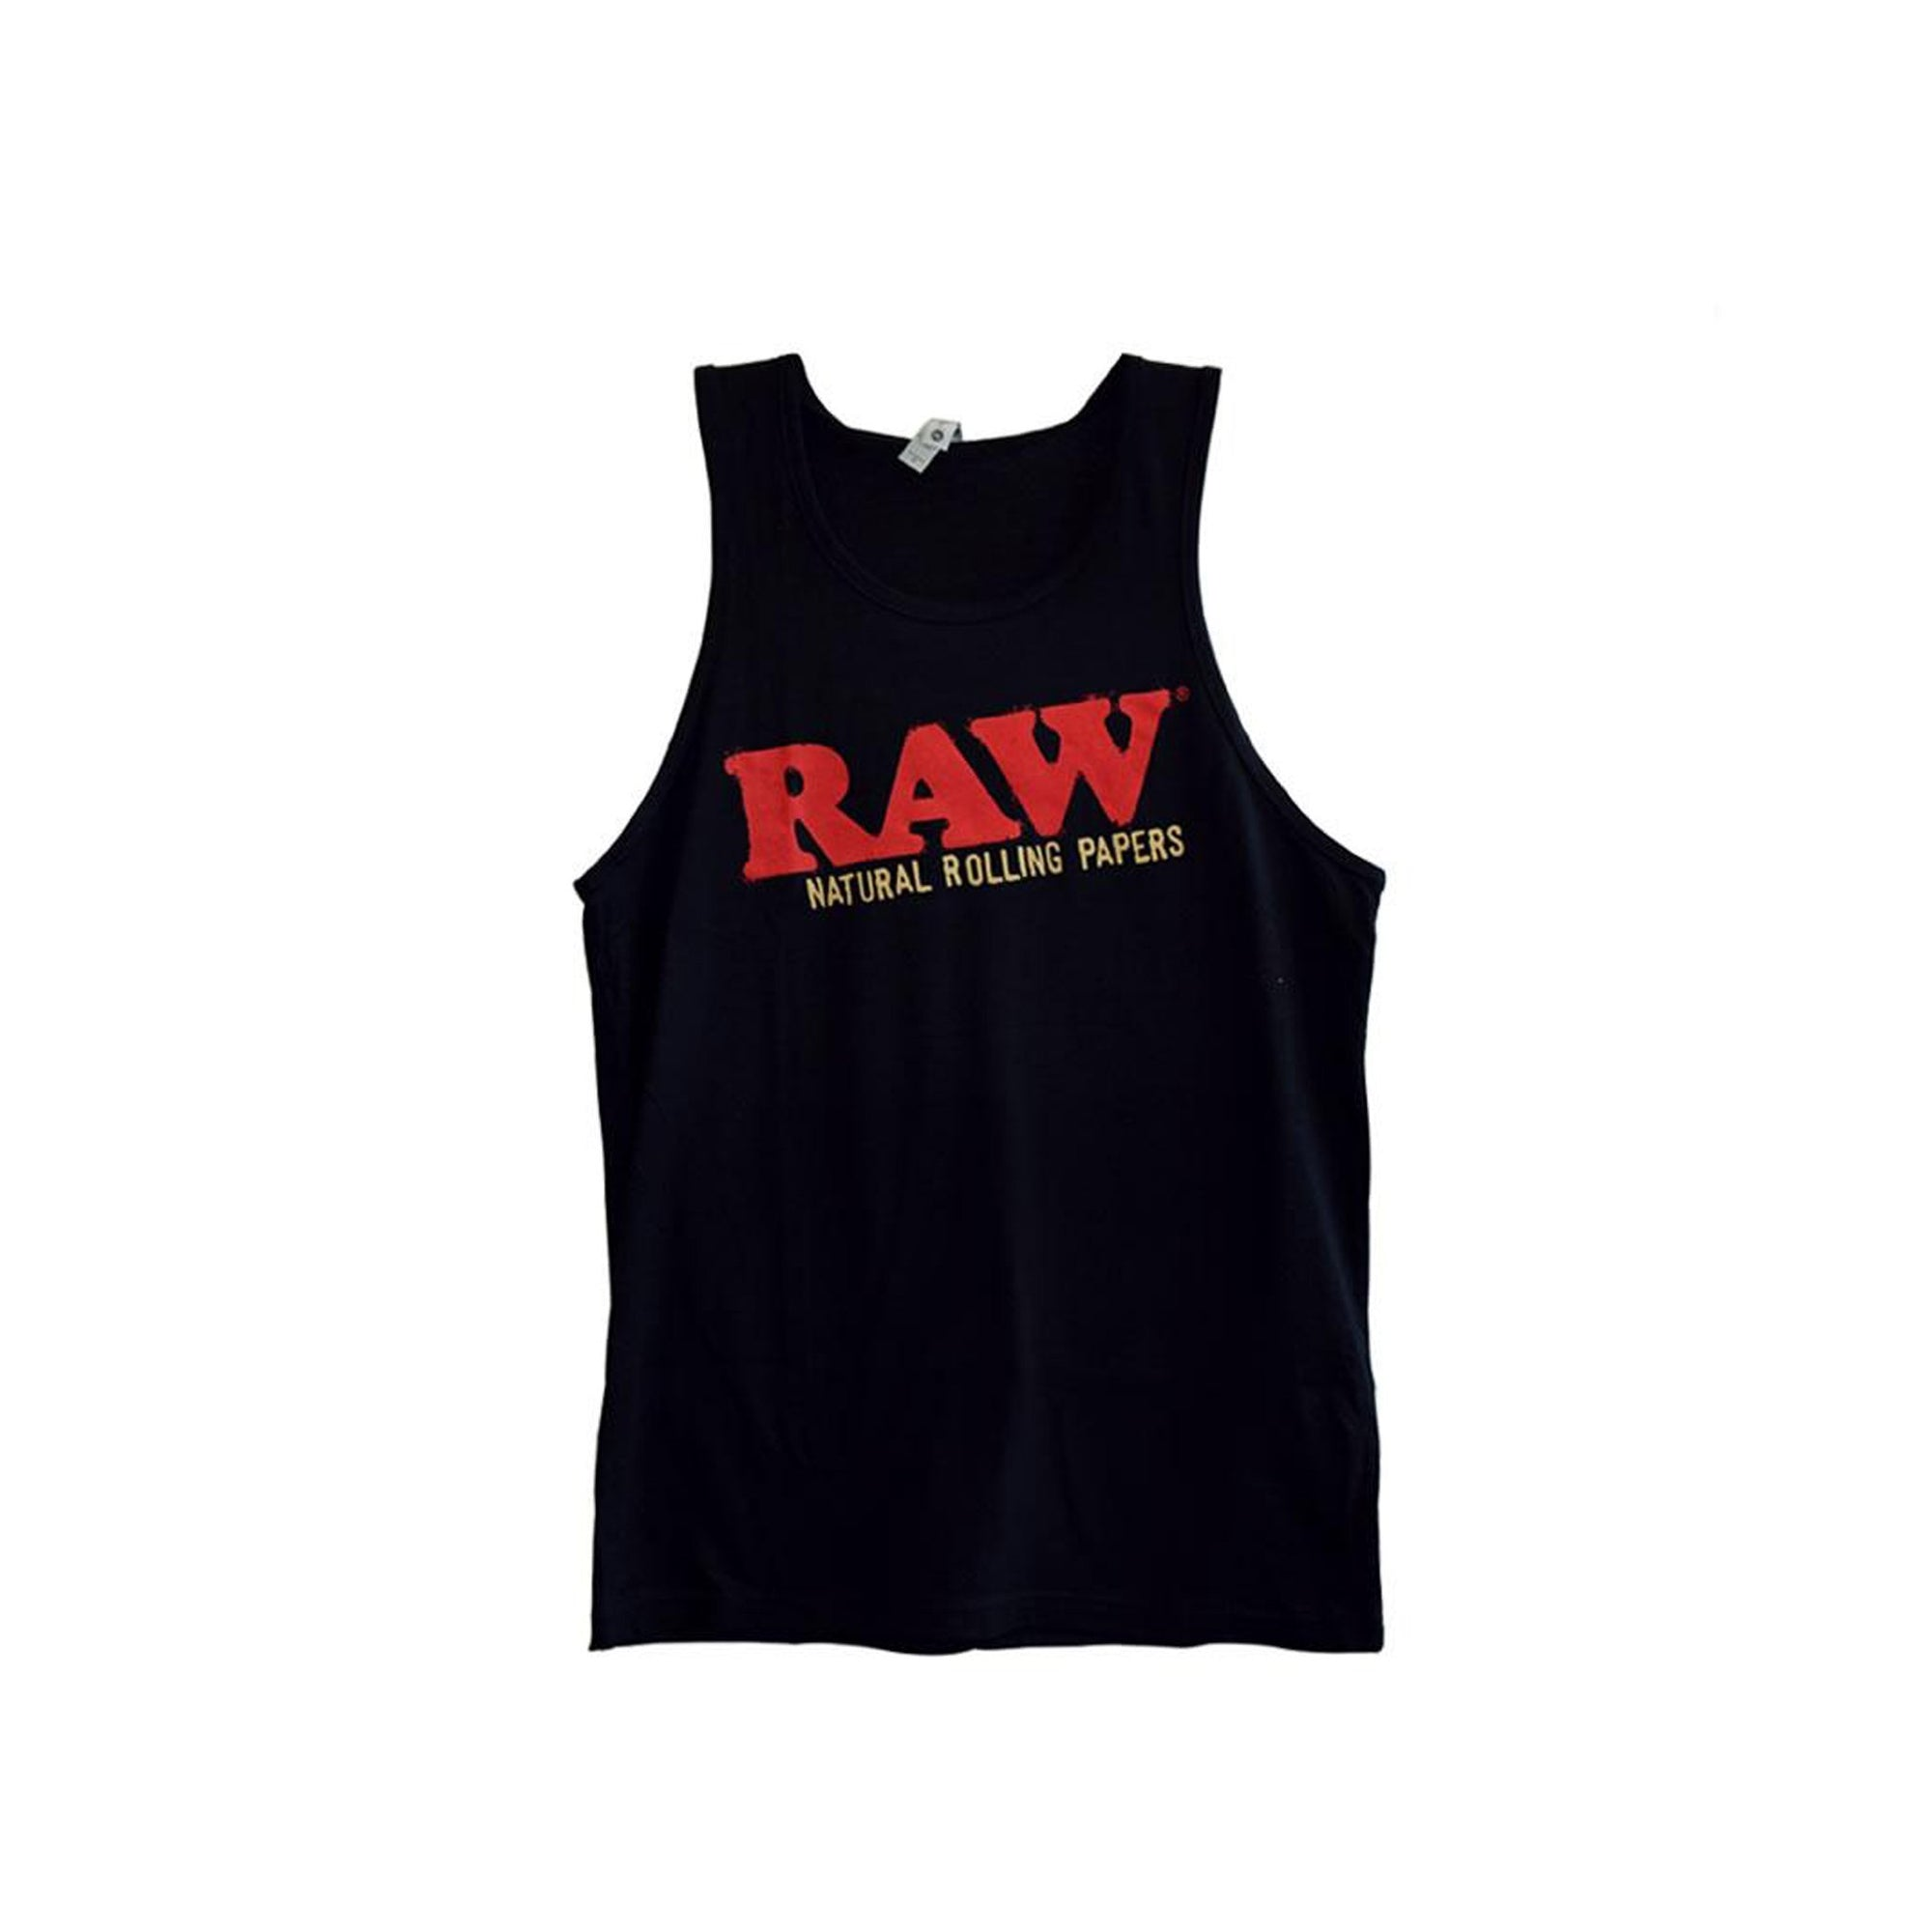 Full shot of front black sleeveless tank top with RAW in red and natural rolling papers wording in brown